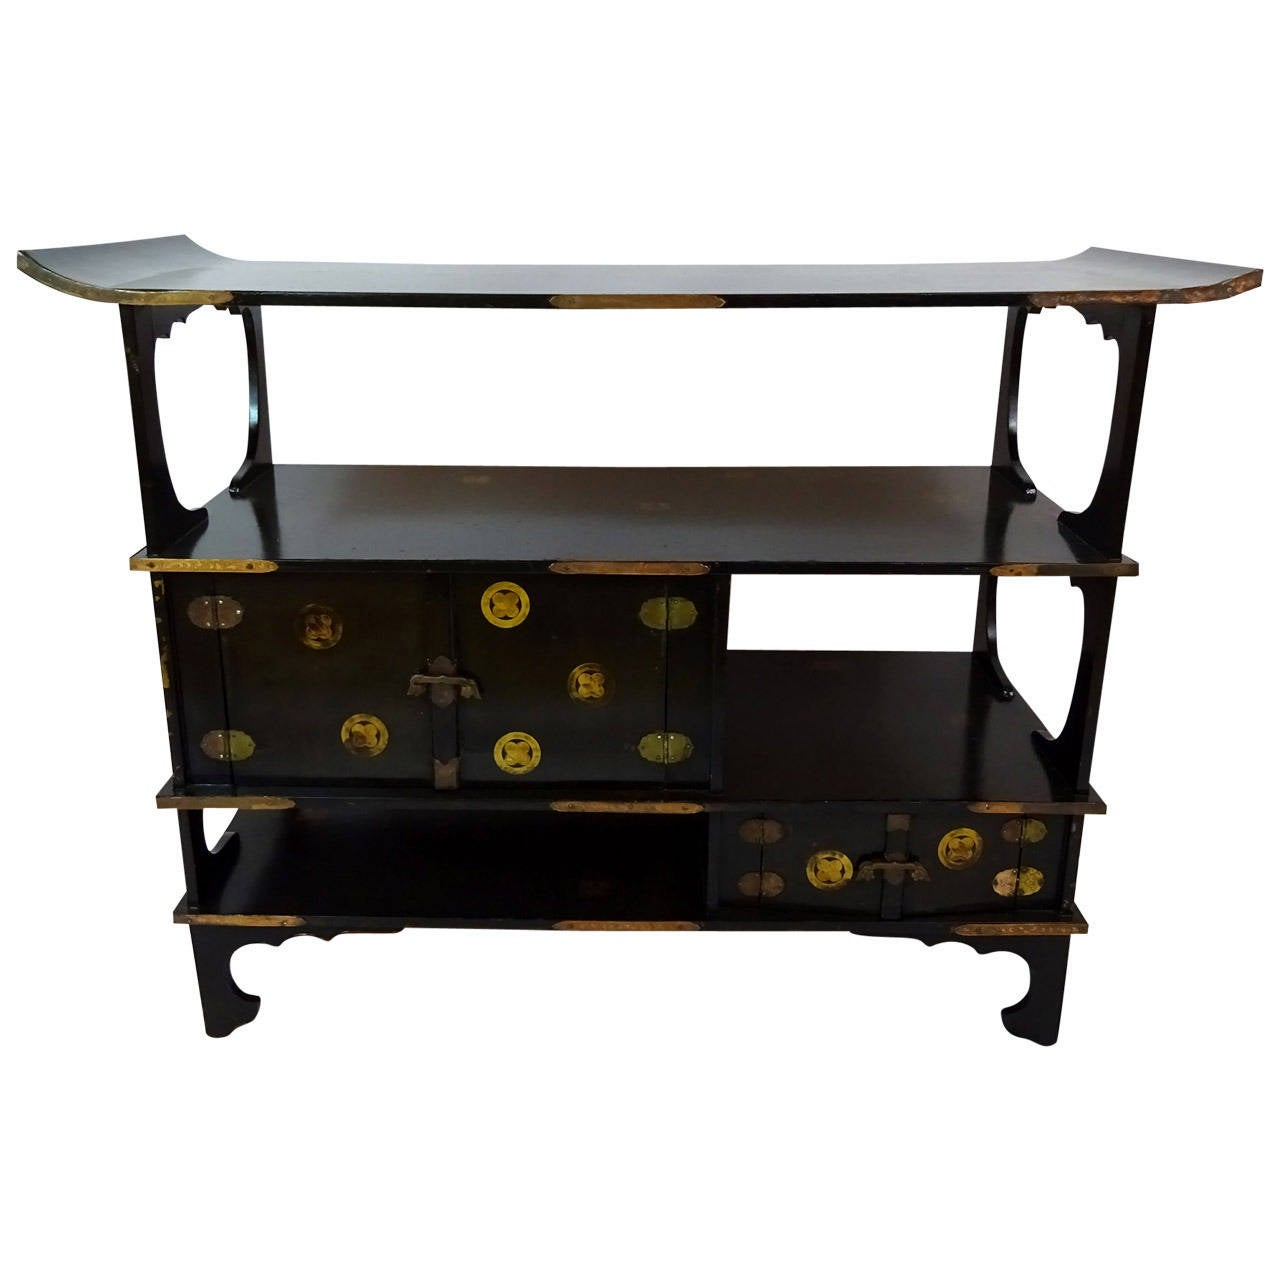 19th Century Japanese Black Lacquer And Gold Painted Table